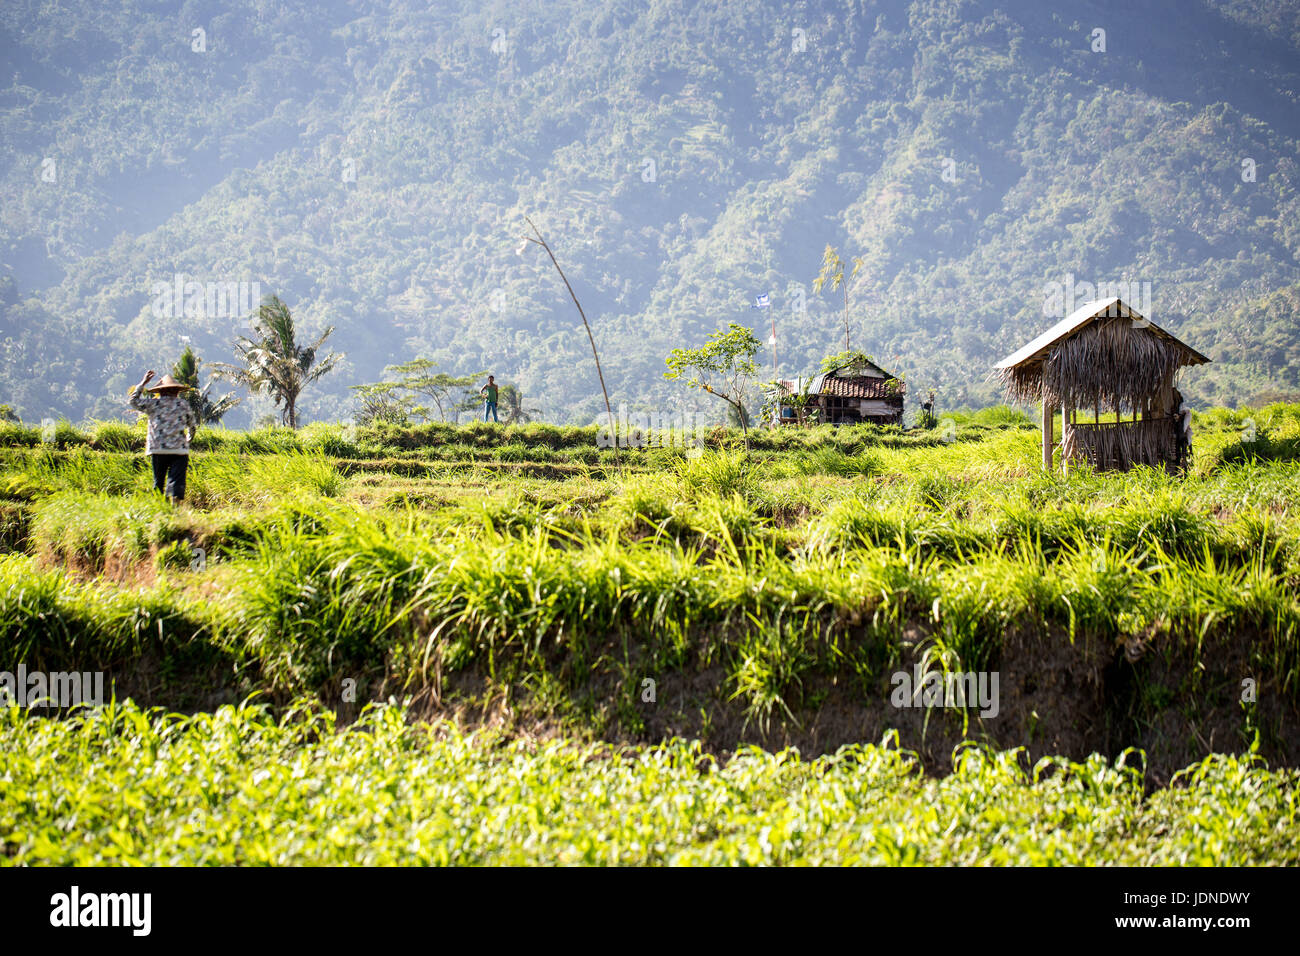 Rice terraces in northern Bali near Mount Agung with workers - Stock Image